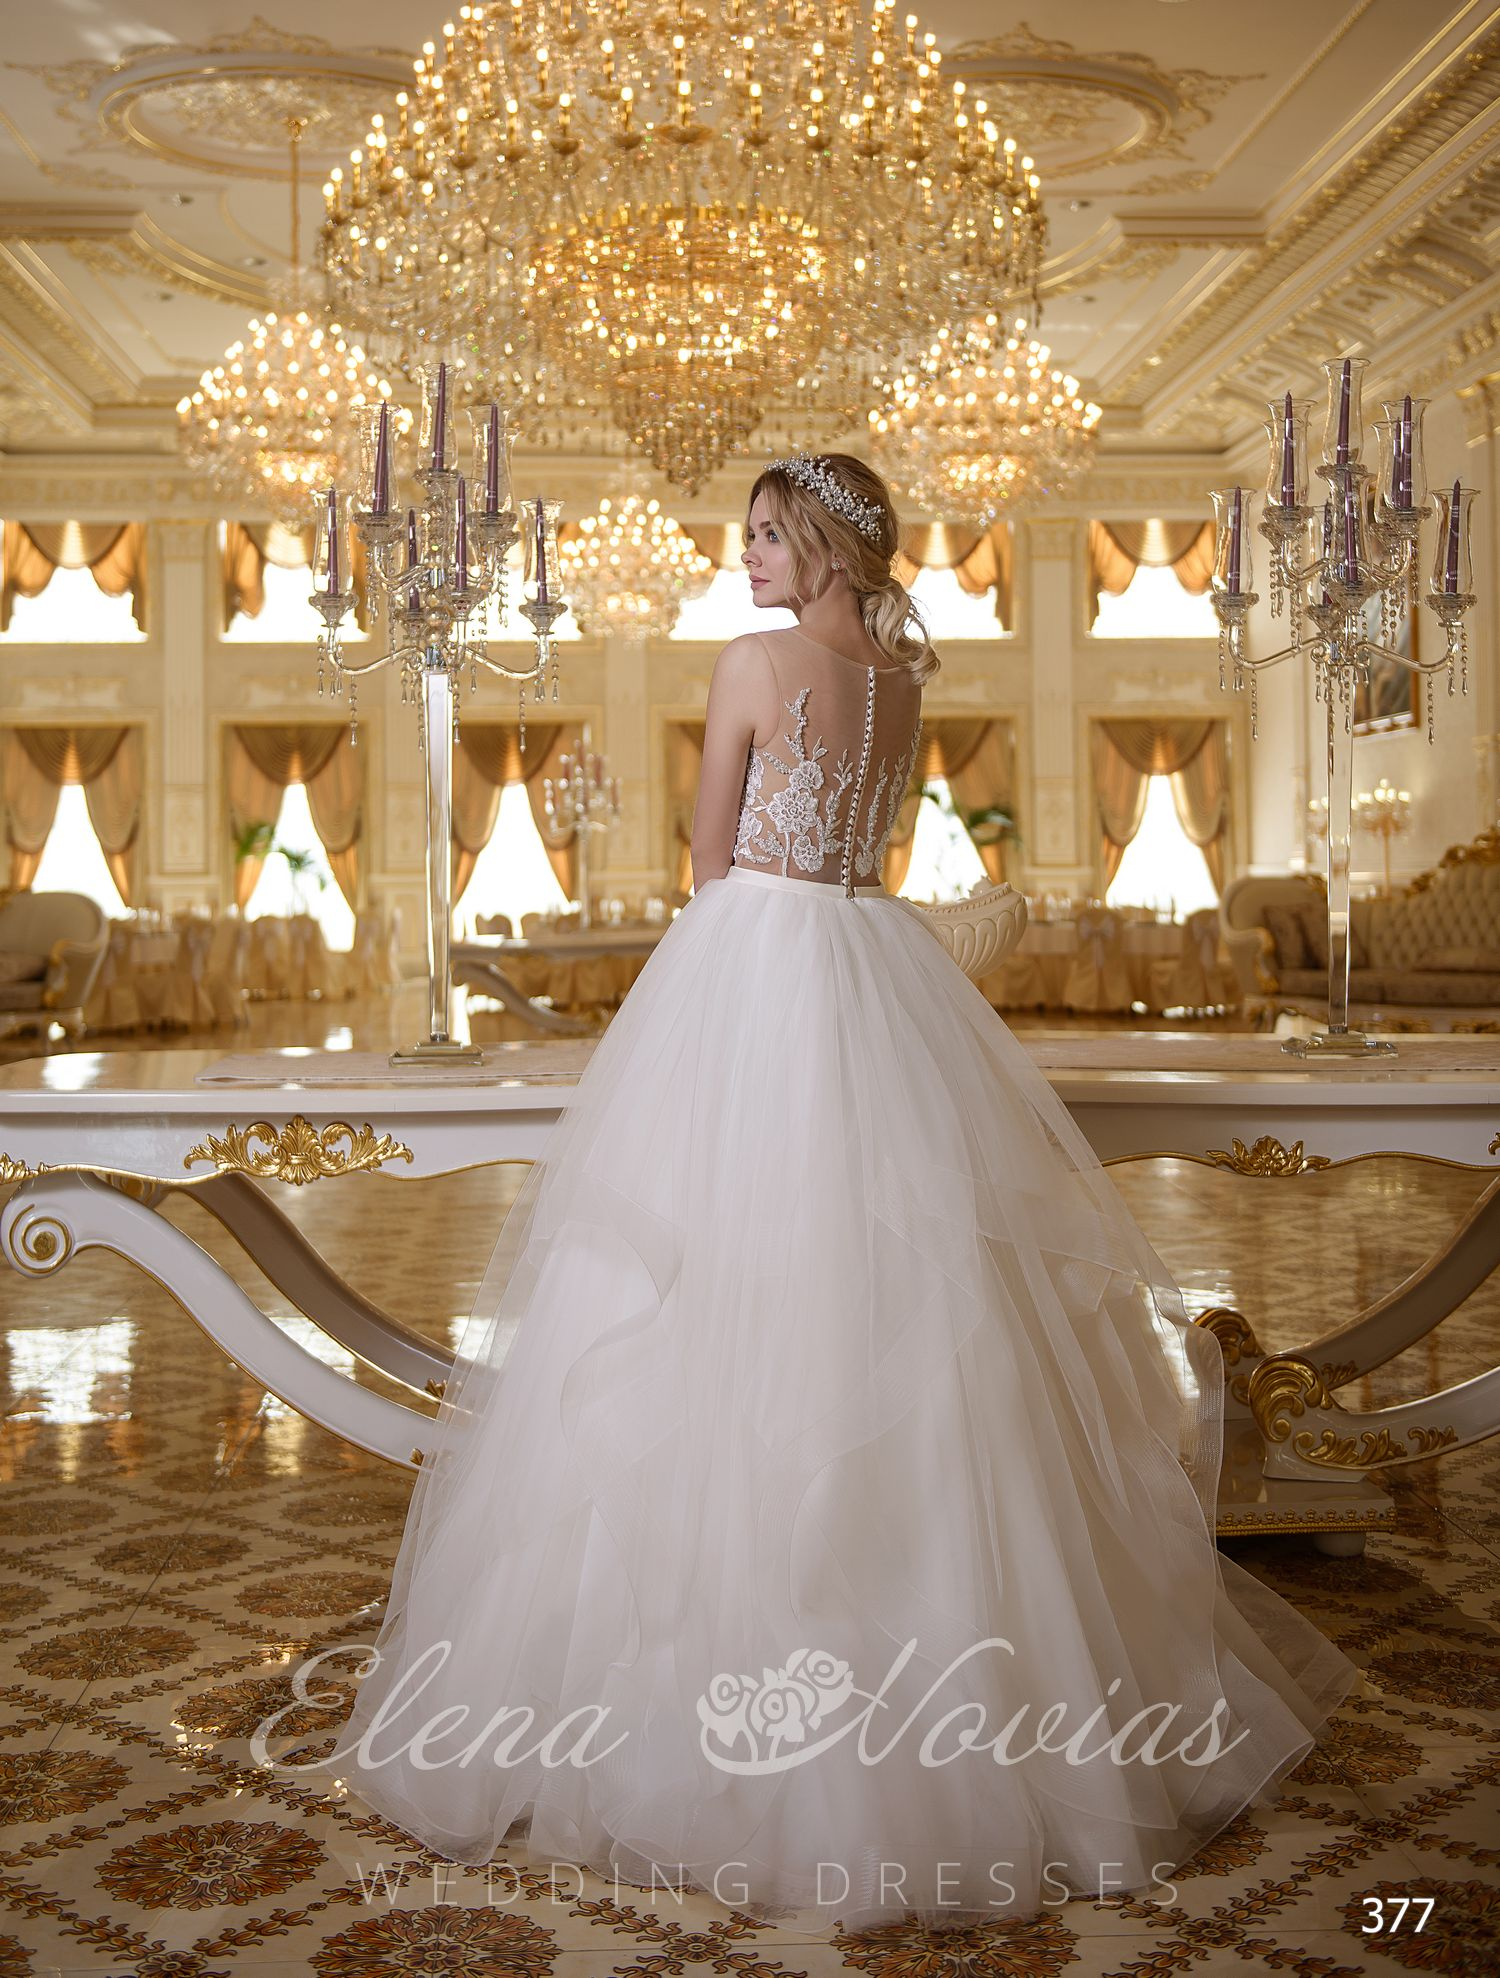 Wedding dress wholesale 377